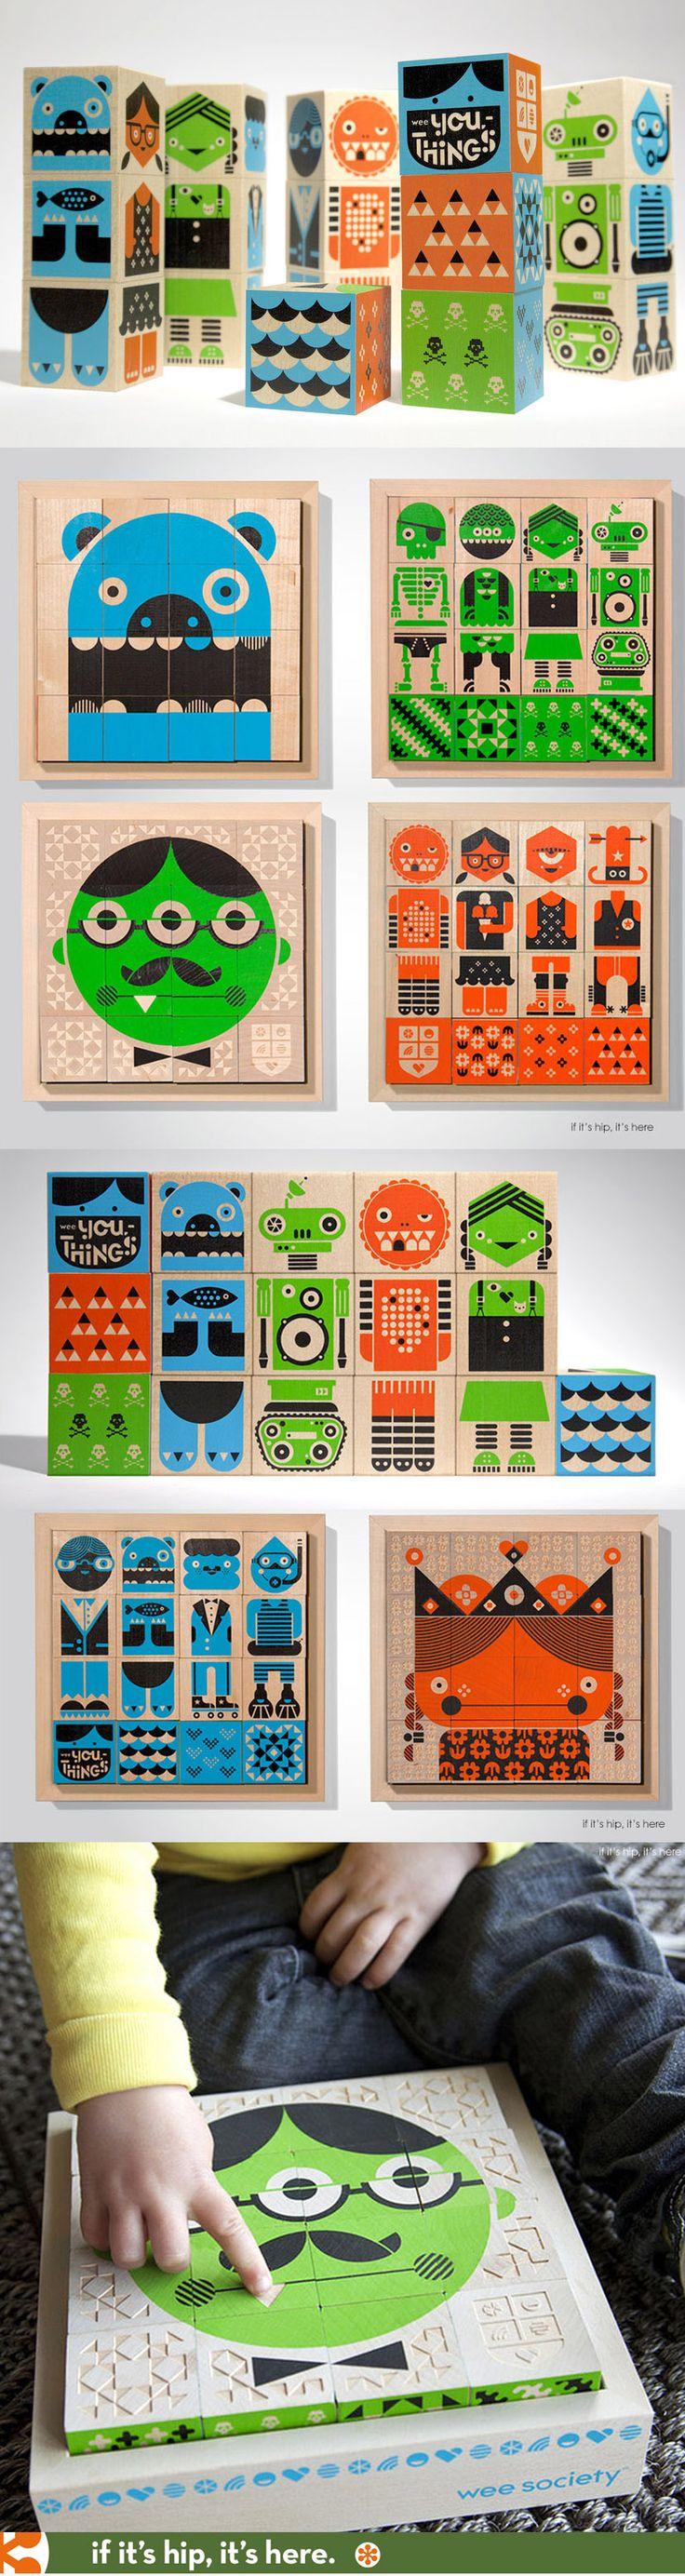 Wee You-Things blocks for kids are made from replaceable basswood and use non-toxic inks for printing the great graphics.